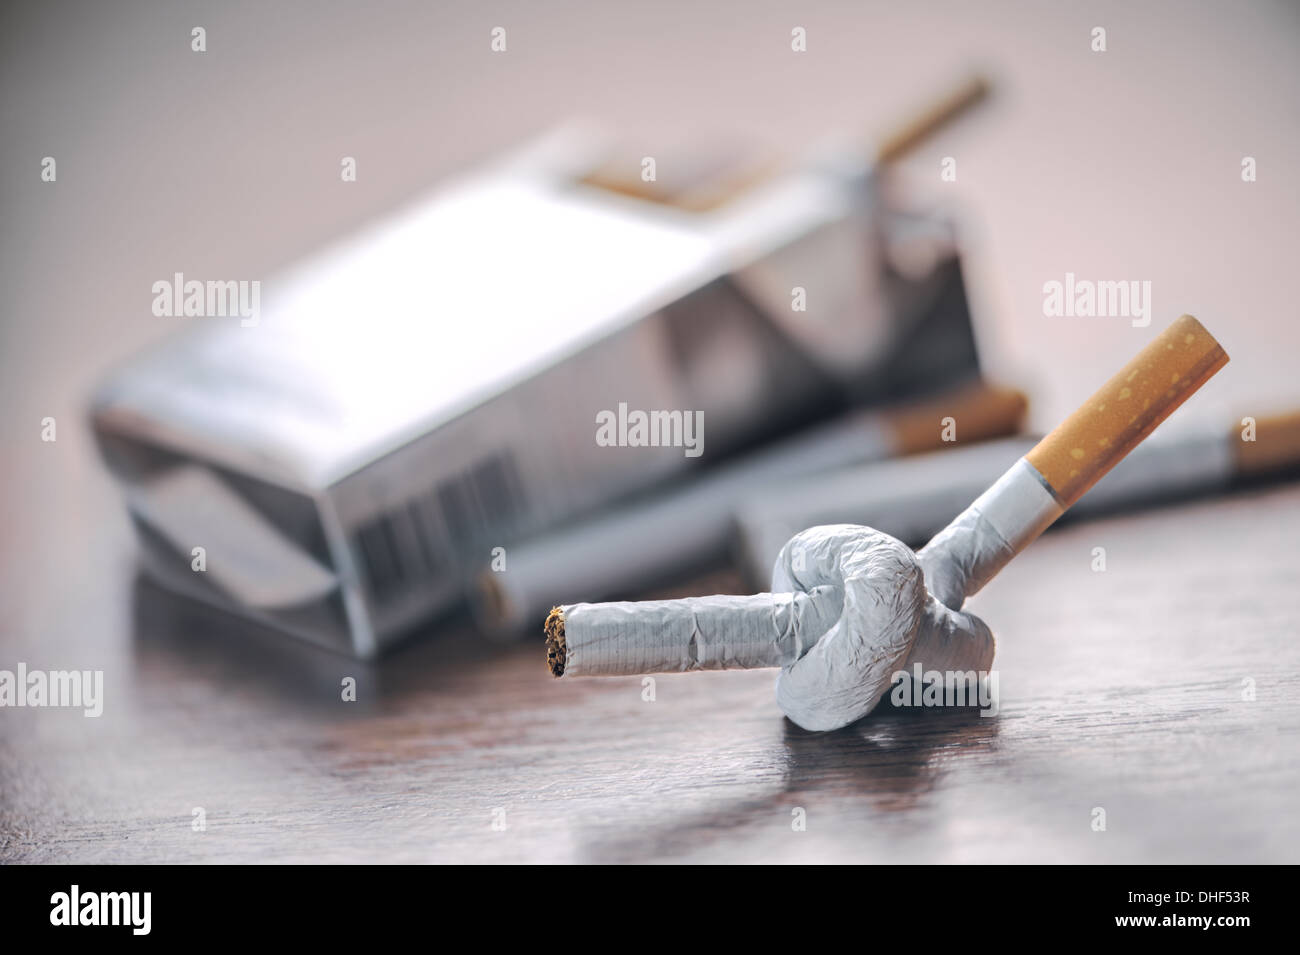 tied cigarette on table closeup - Stock Image